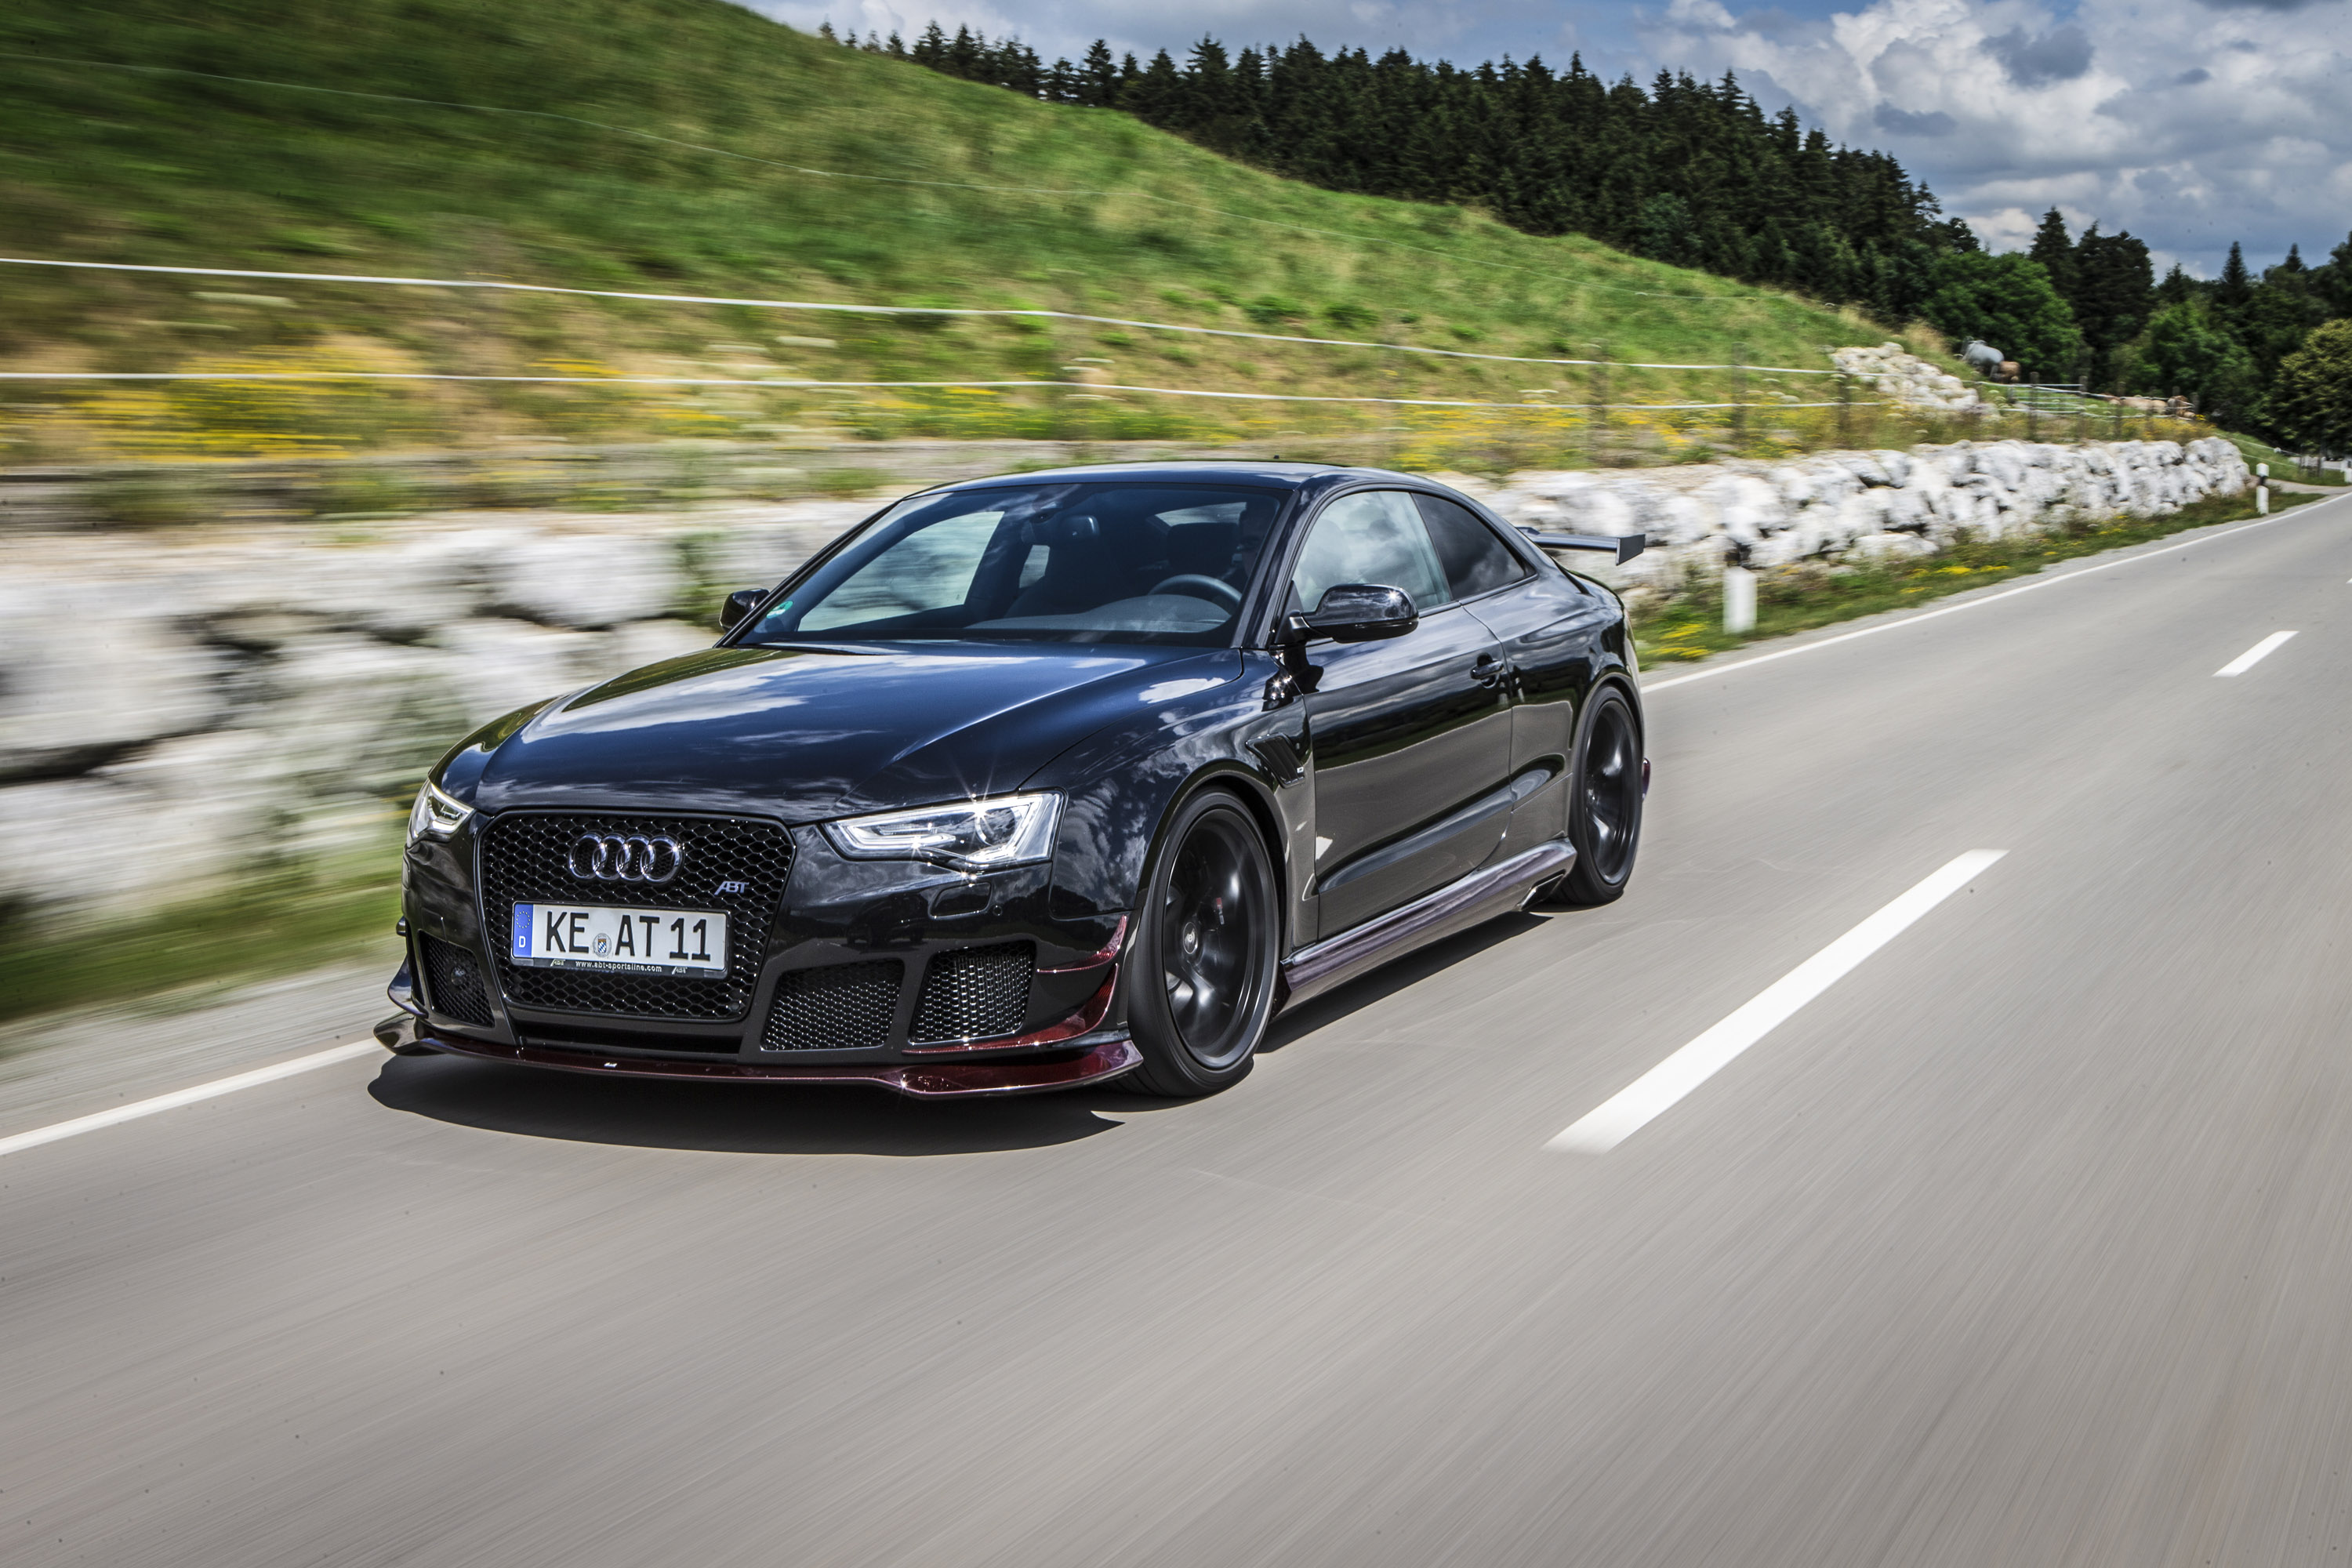 2014 abt audi rs5 r is capable of reaching top speed of 290 km h. Black Bedroom Furniture Sets. Home Design Ideas